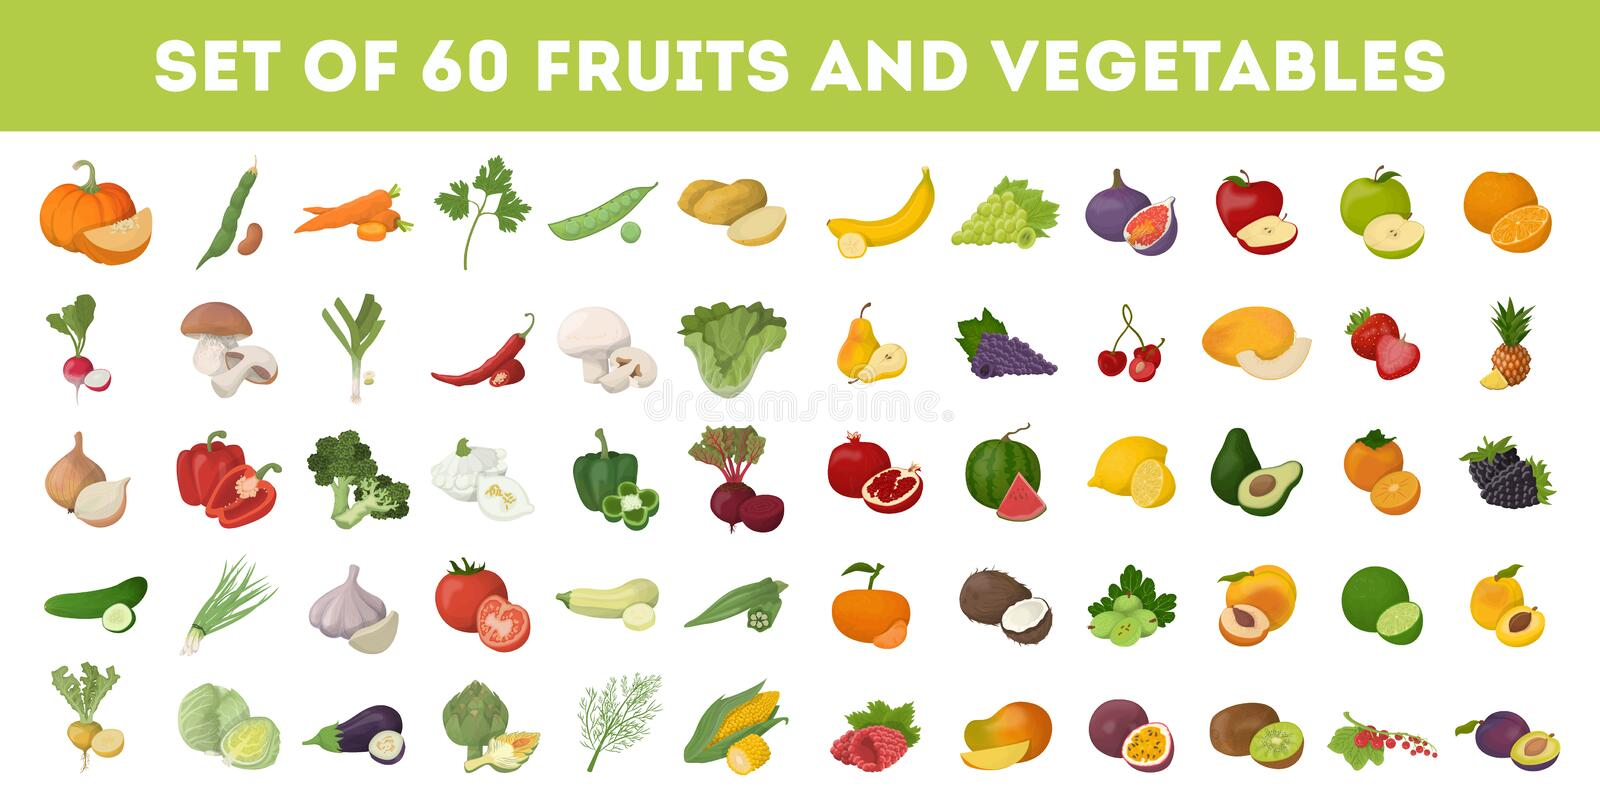 Fruits and vegetables. Fruits and vegetables icons set. Apples and bananas, tomatoes and cucumbers and more stock illustration